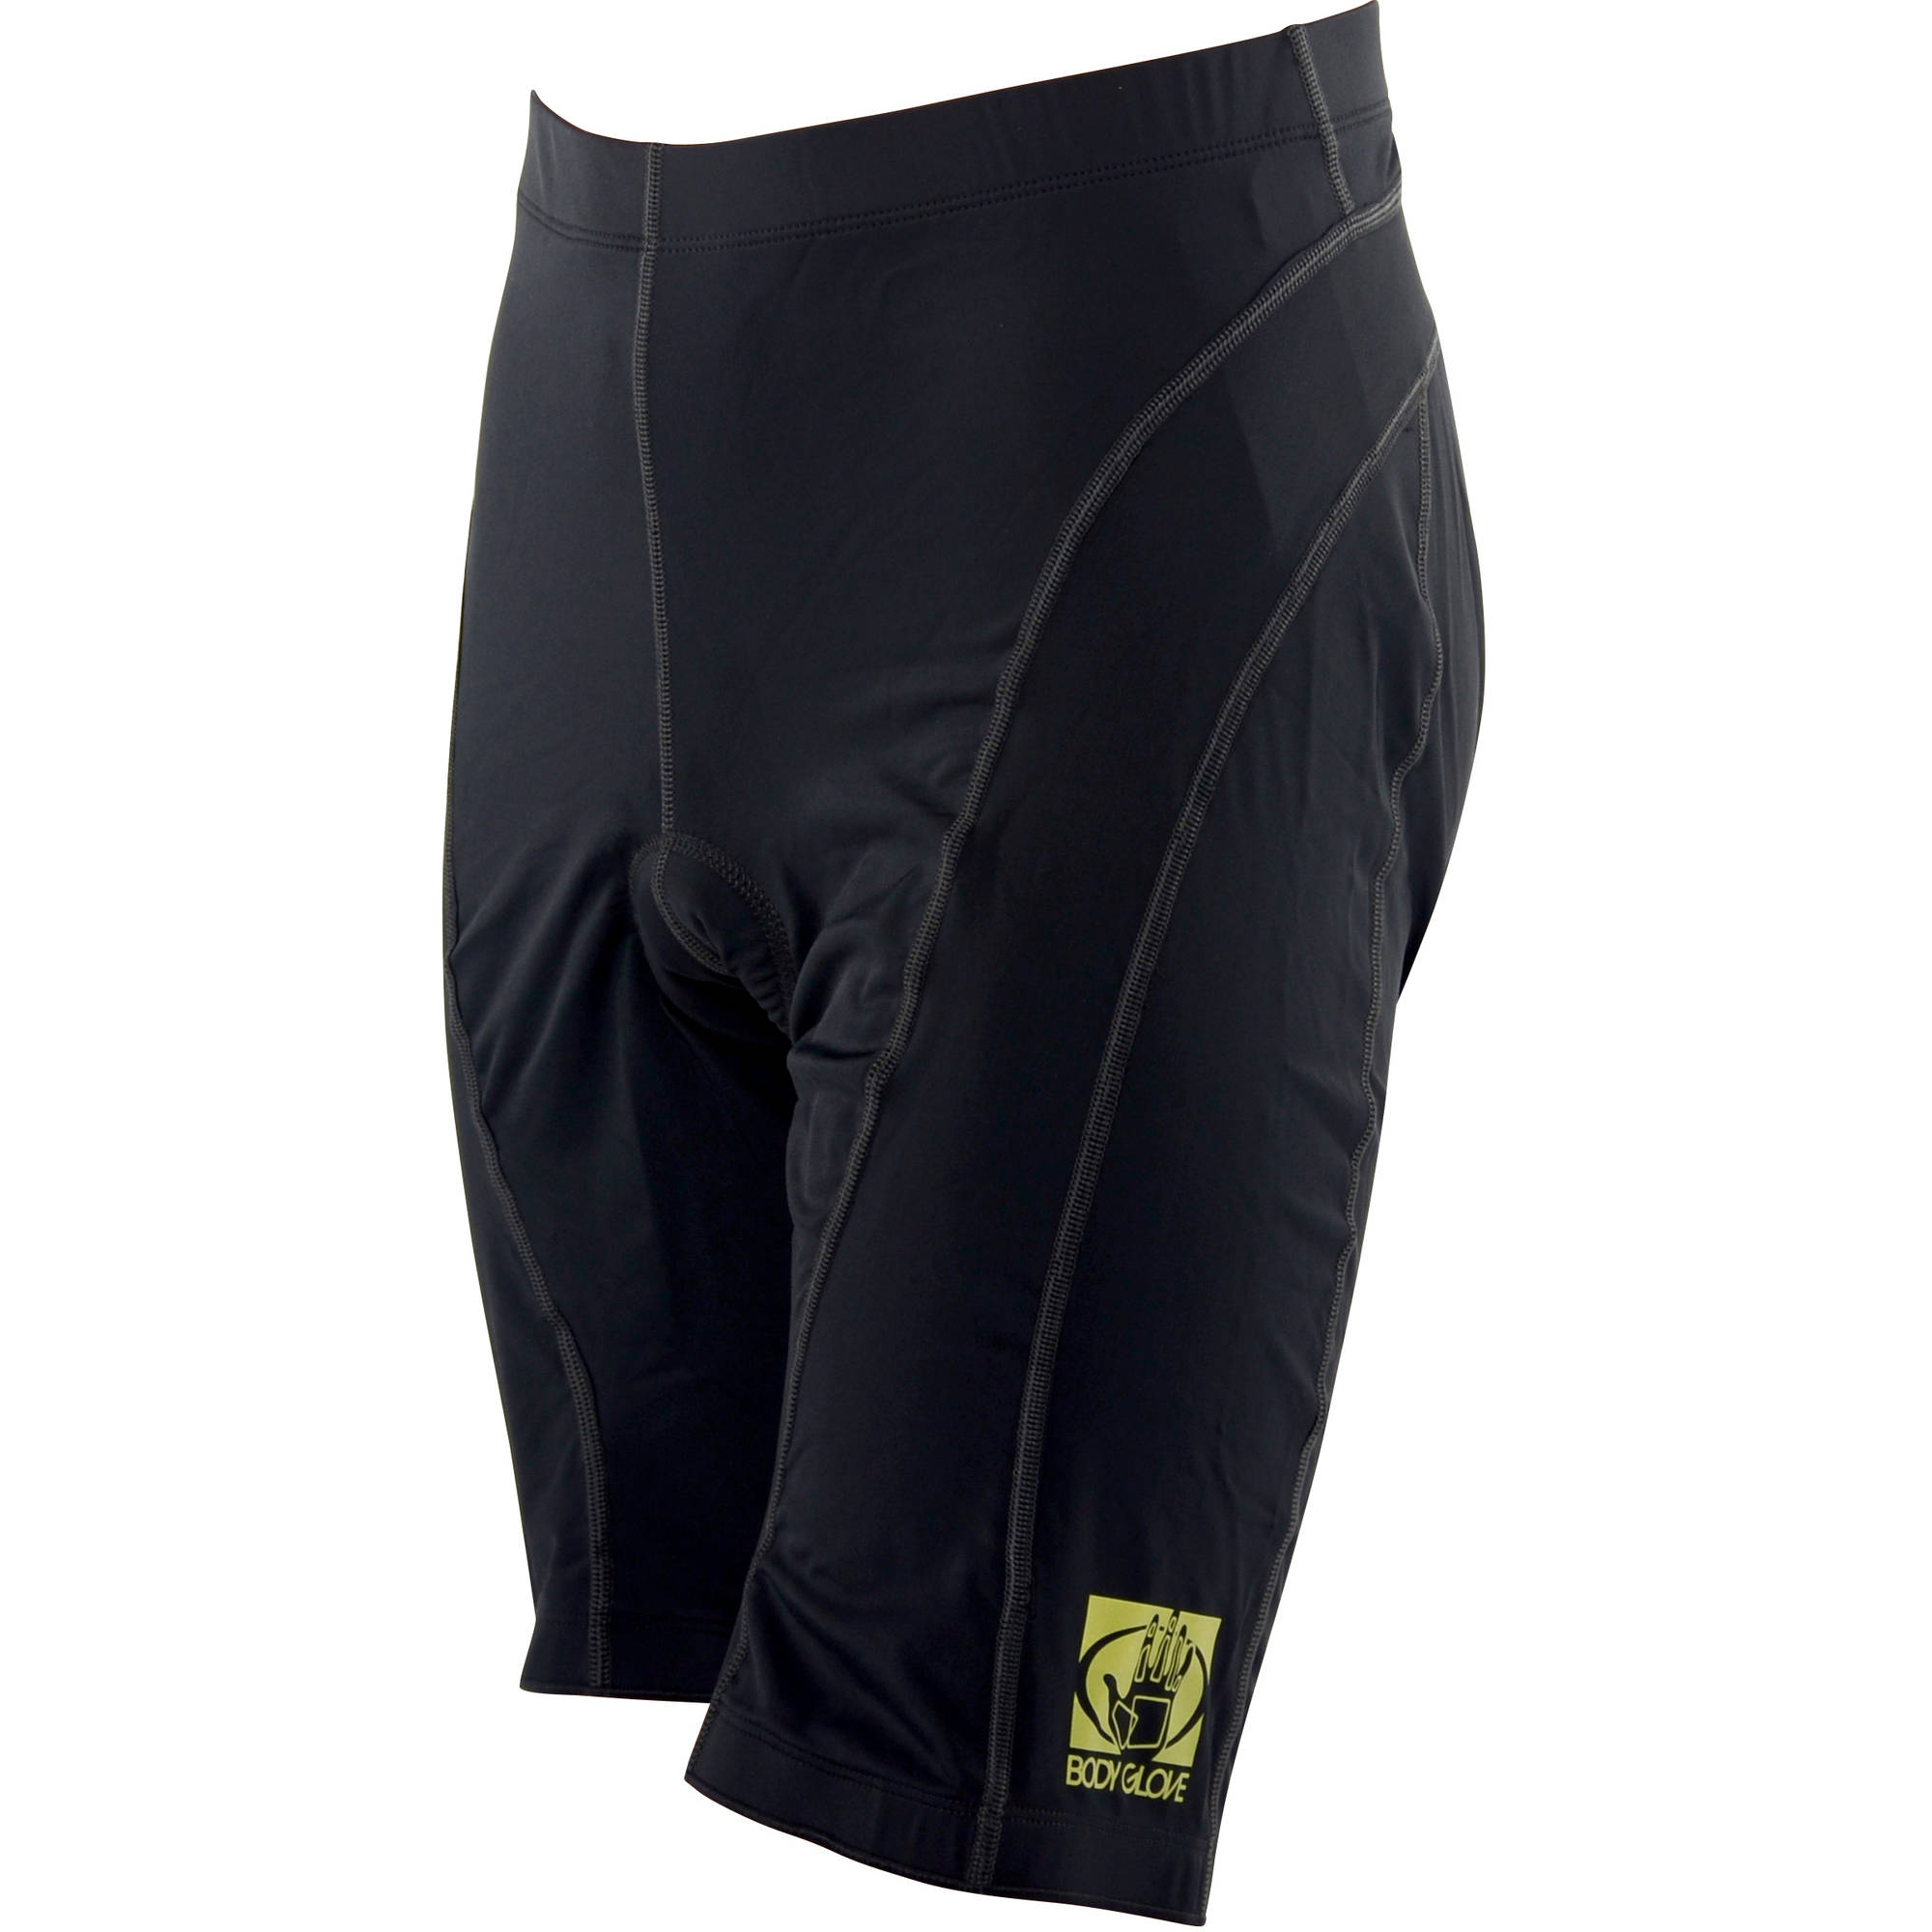 Pro Comfort 10-panel Cycling Short by Cycle Force Group